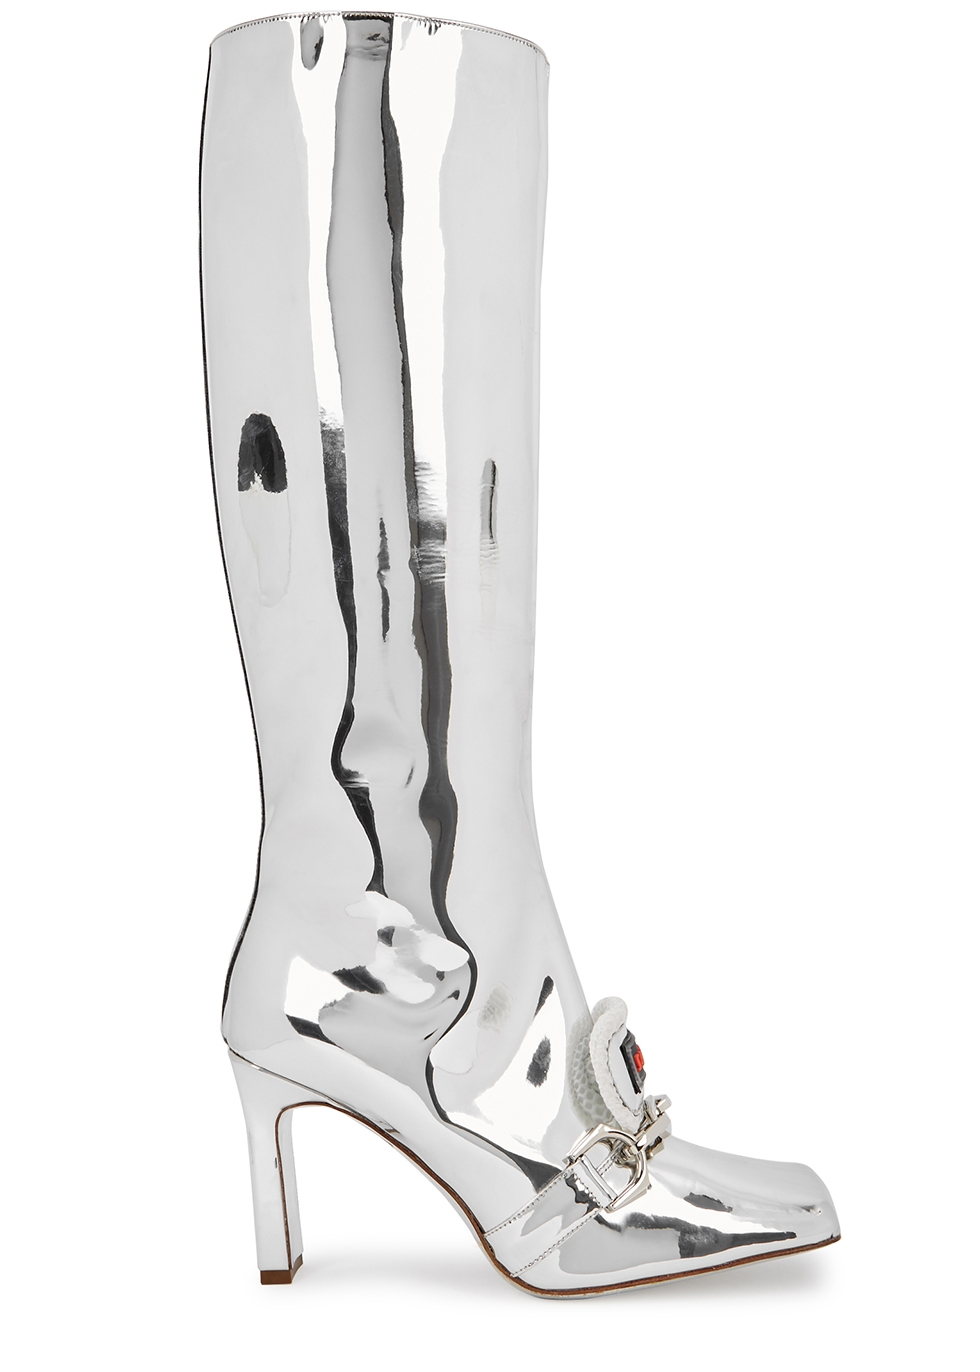 90 silver leather knee-high boots